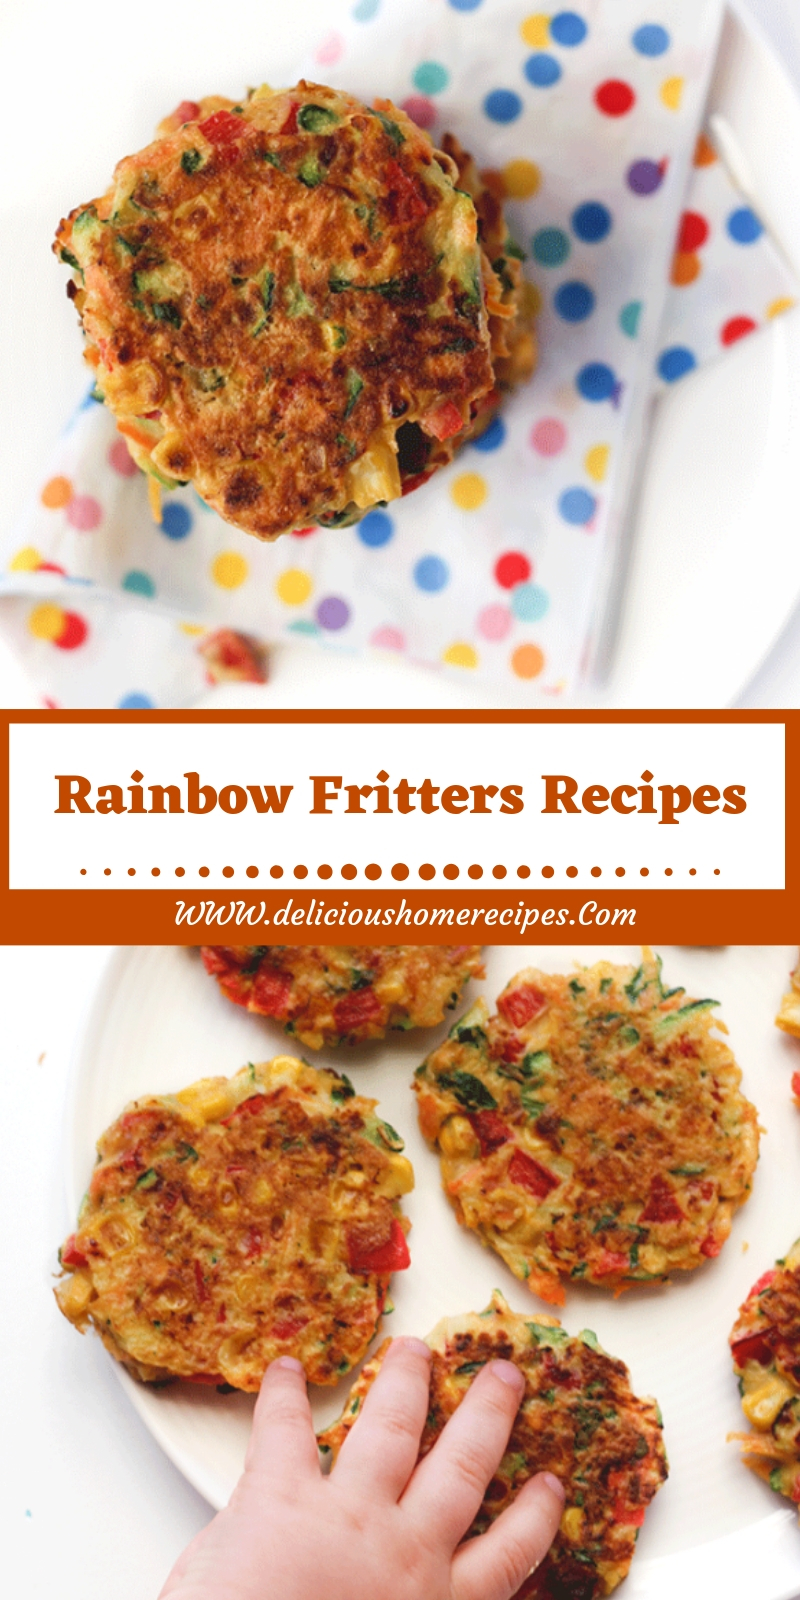 Rainbow Fritters Recipes